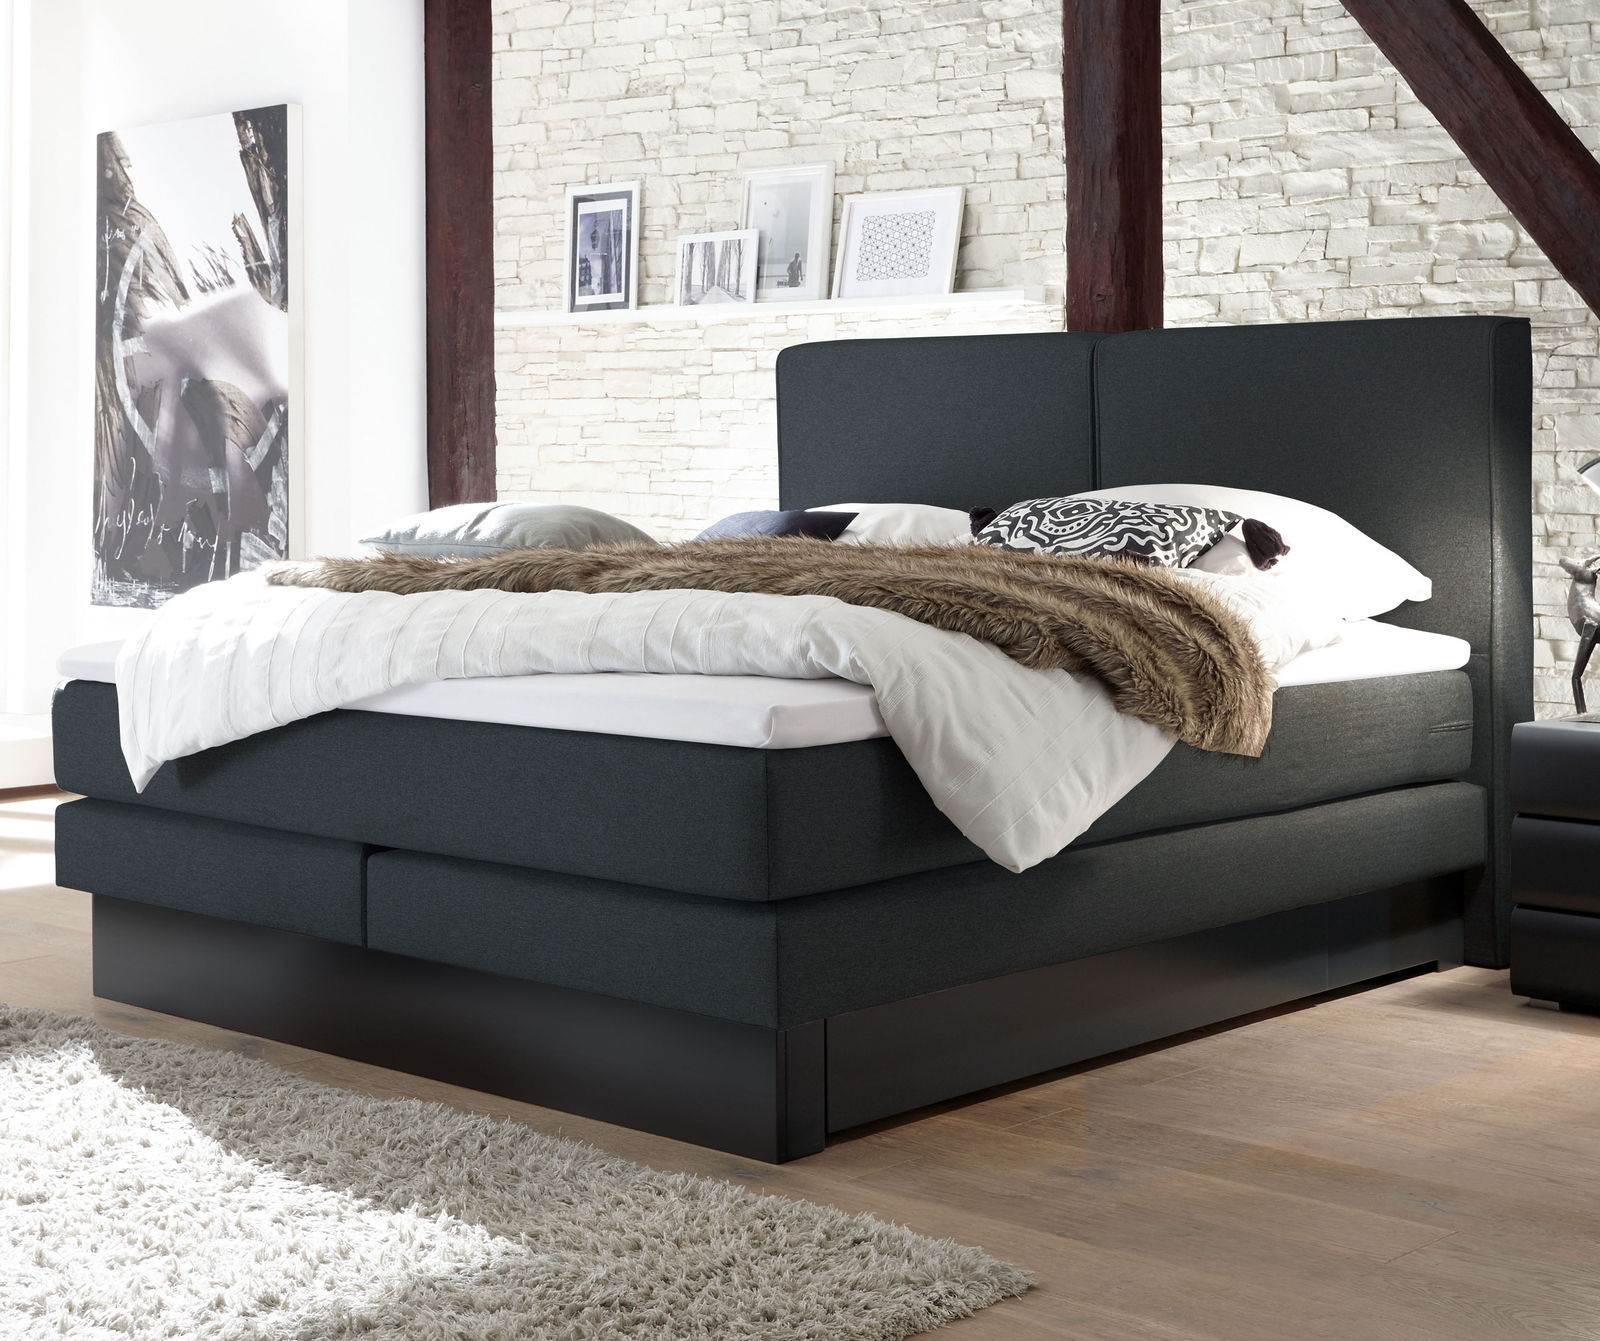 boxspringbett mit bettkasten und weichem velours bezug sintra. Black Bedroom Furniture Sets. Home Design Ideas